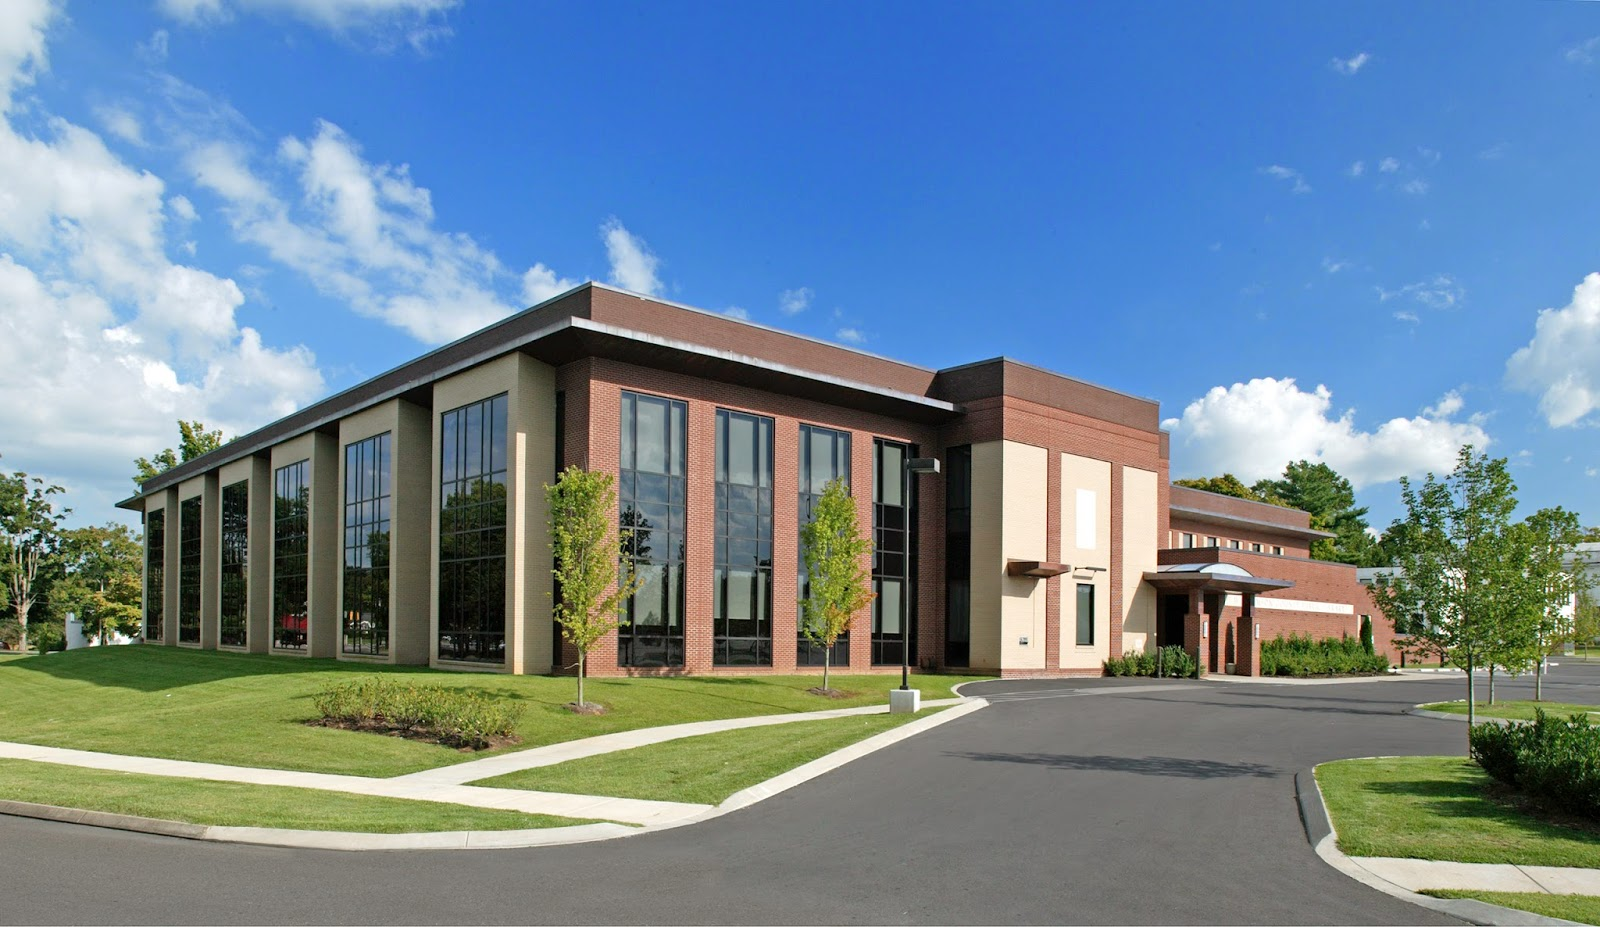 Image of Williamson County Public Library